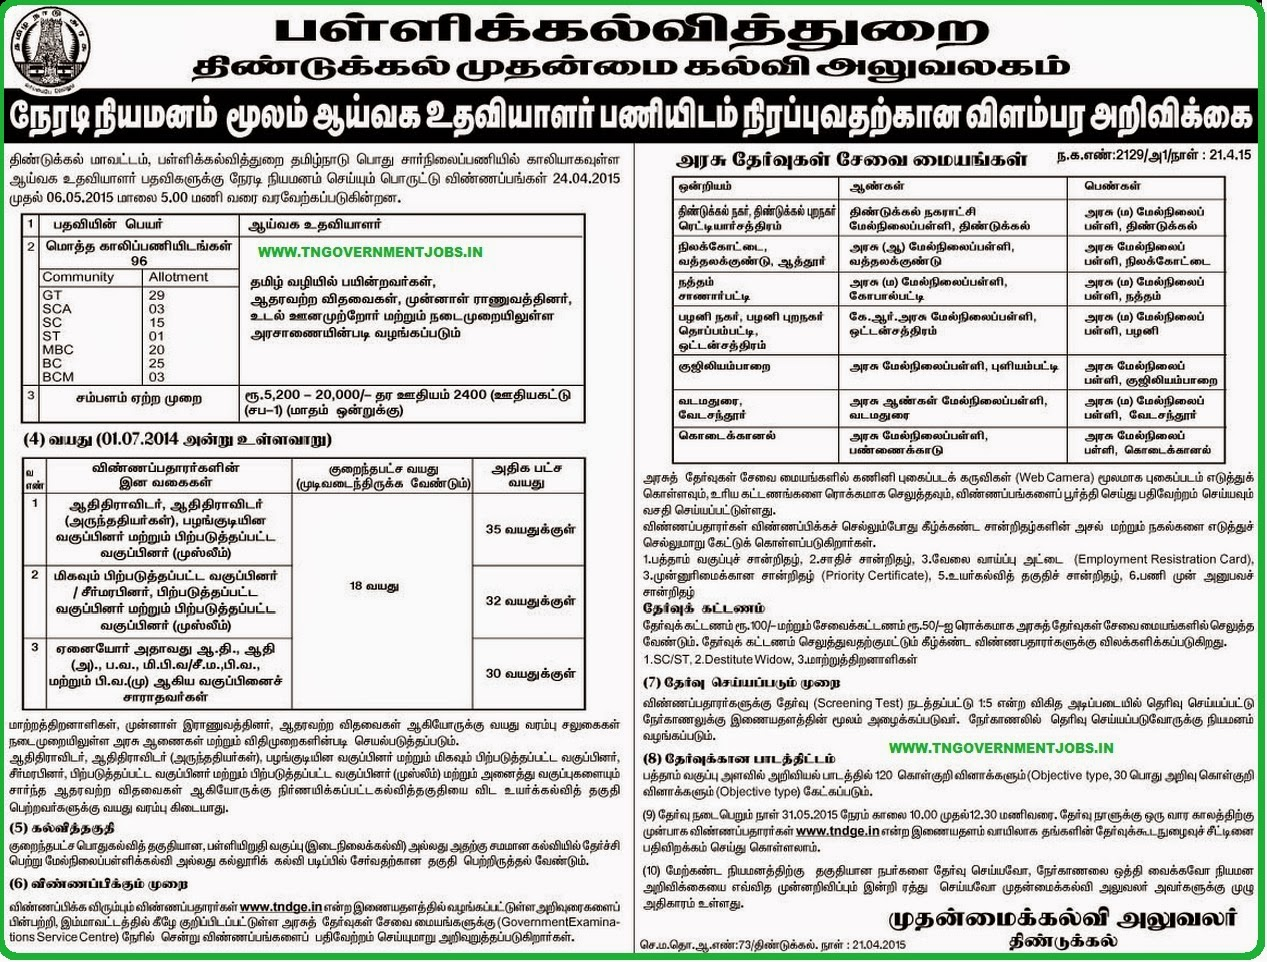 Dindigul CEO Lab Asst Recruitments 2015 (www.tngovernmentjobs.in)